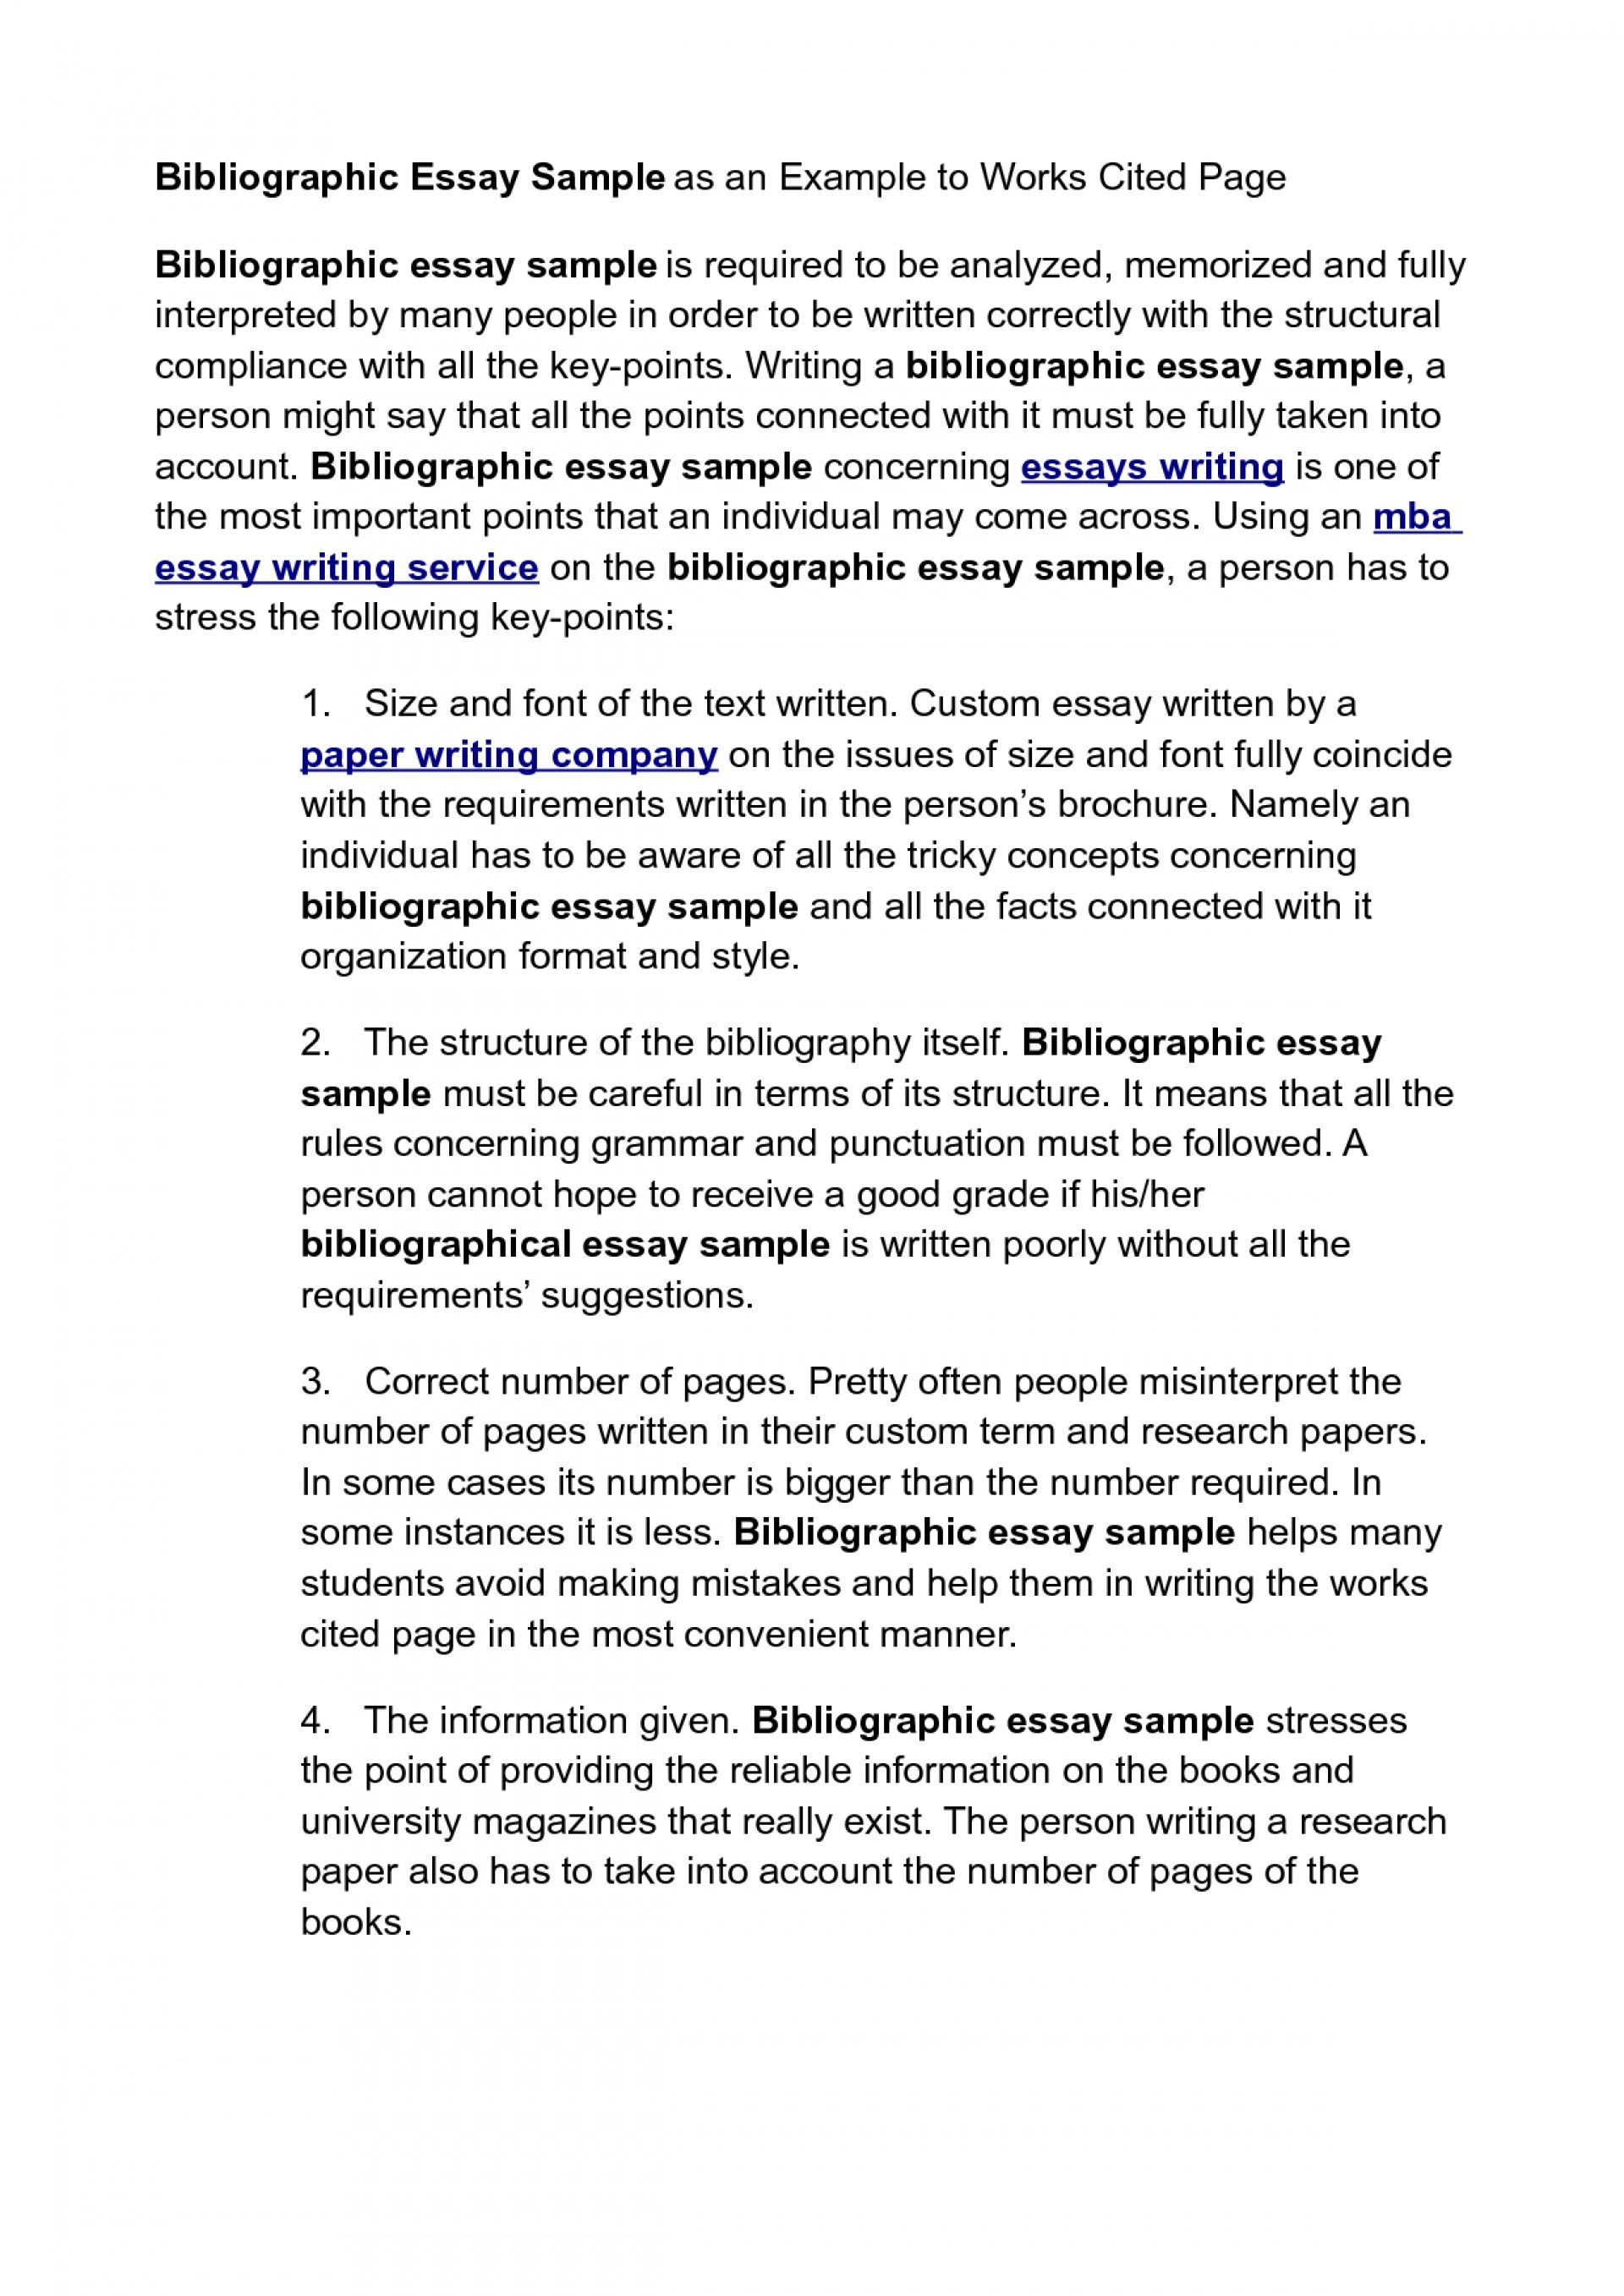 024 How To Cite In An Essay Sample Persuasive With Works Cited Example Of Mla L Awful A Paper Two First Authors From Website Apa Evidence Examples 1920